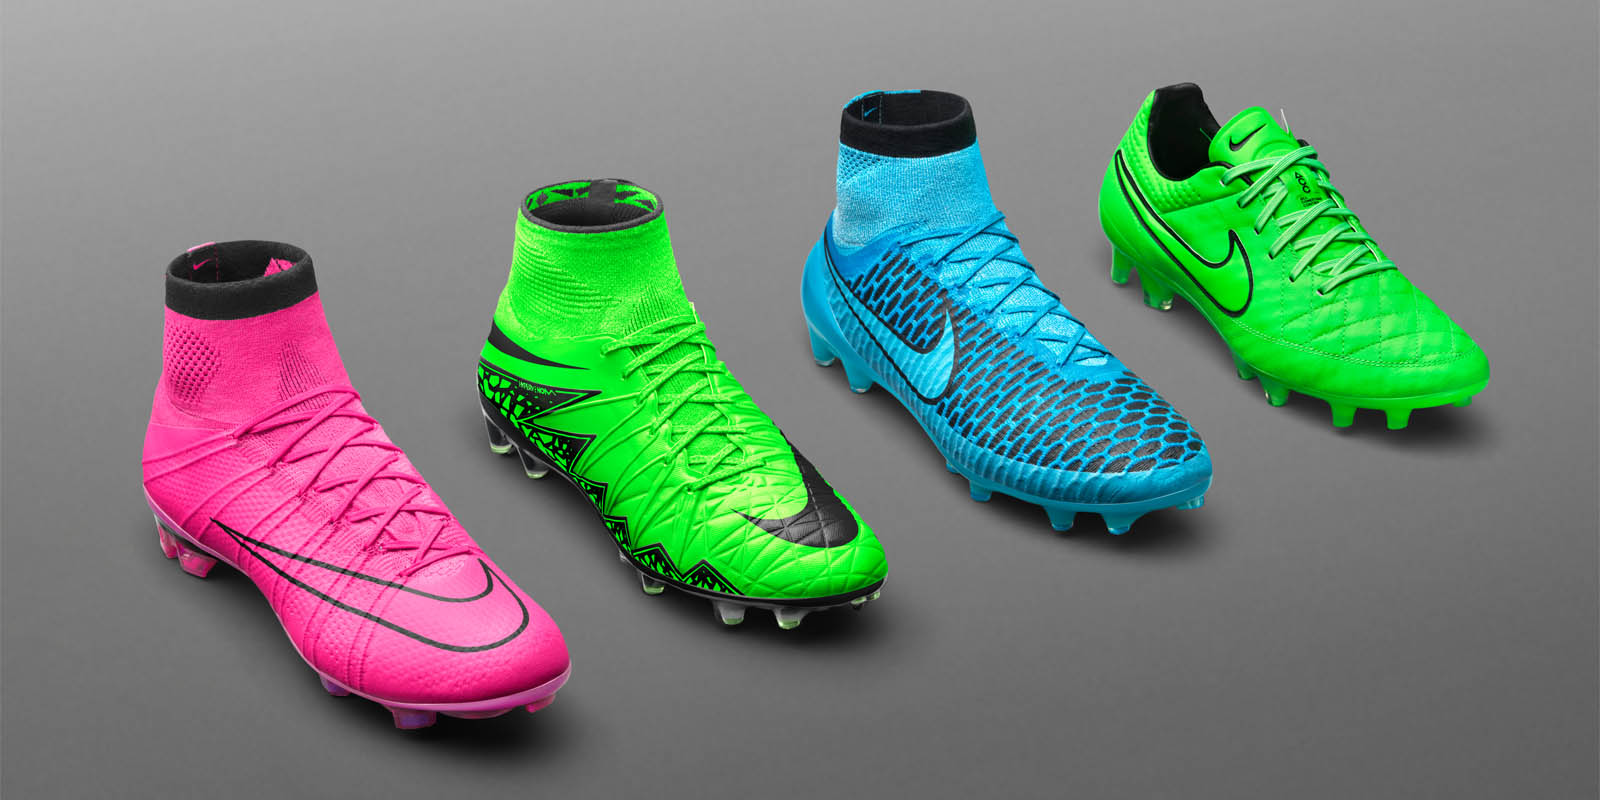 new nike soccer boots 2016 popular nike tennis shoes